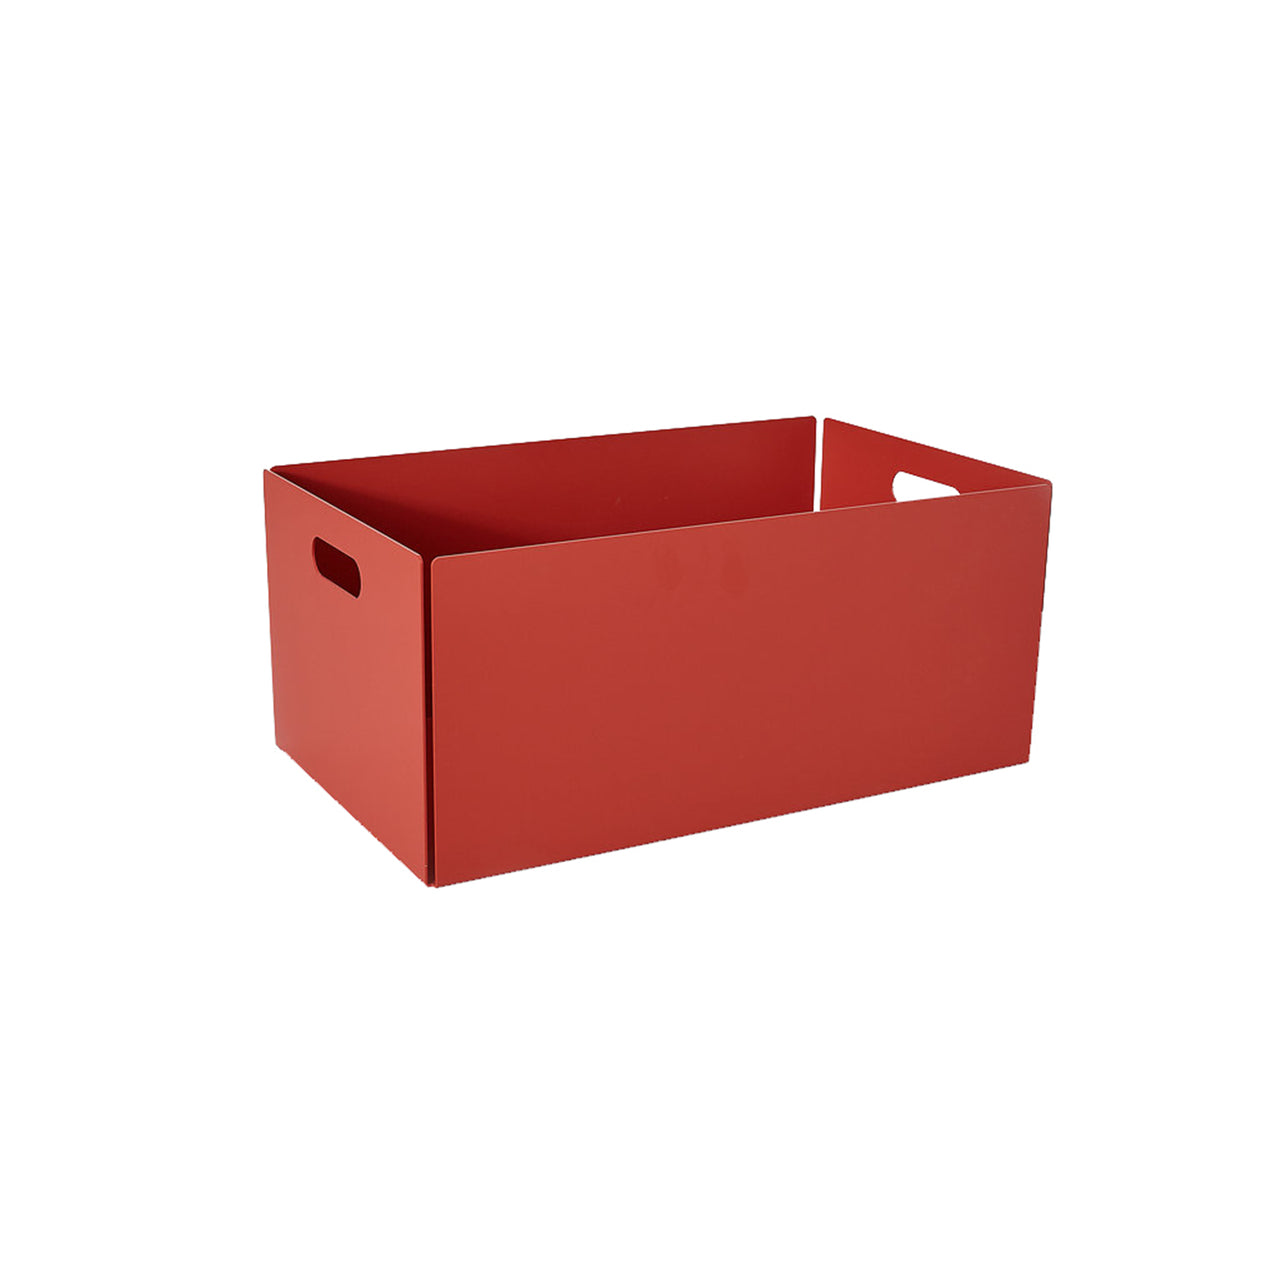 Metal Dowel Basket: Large + Coral Red